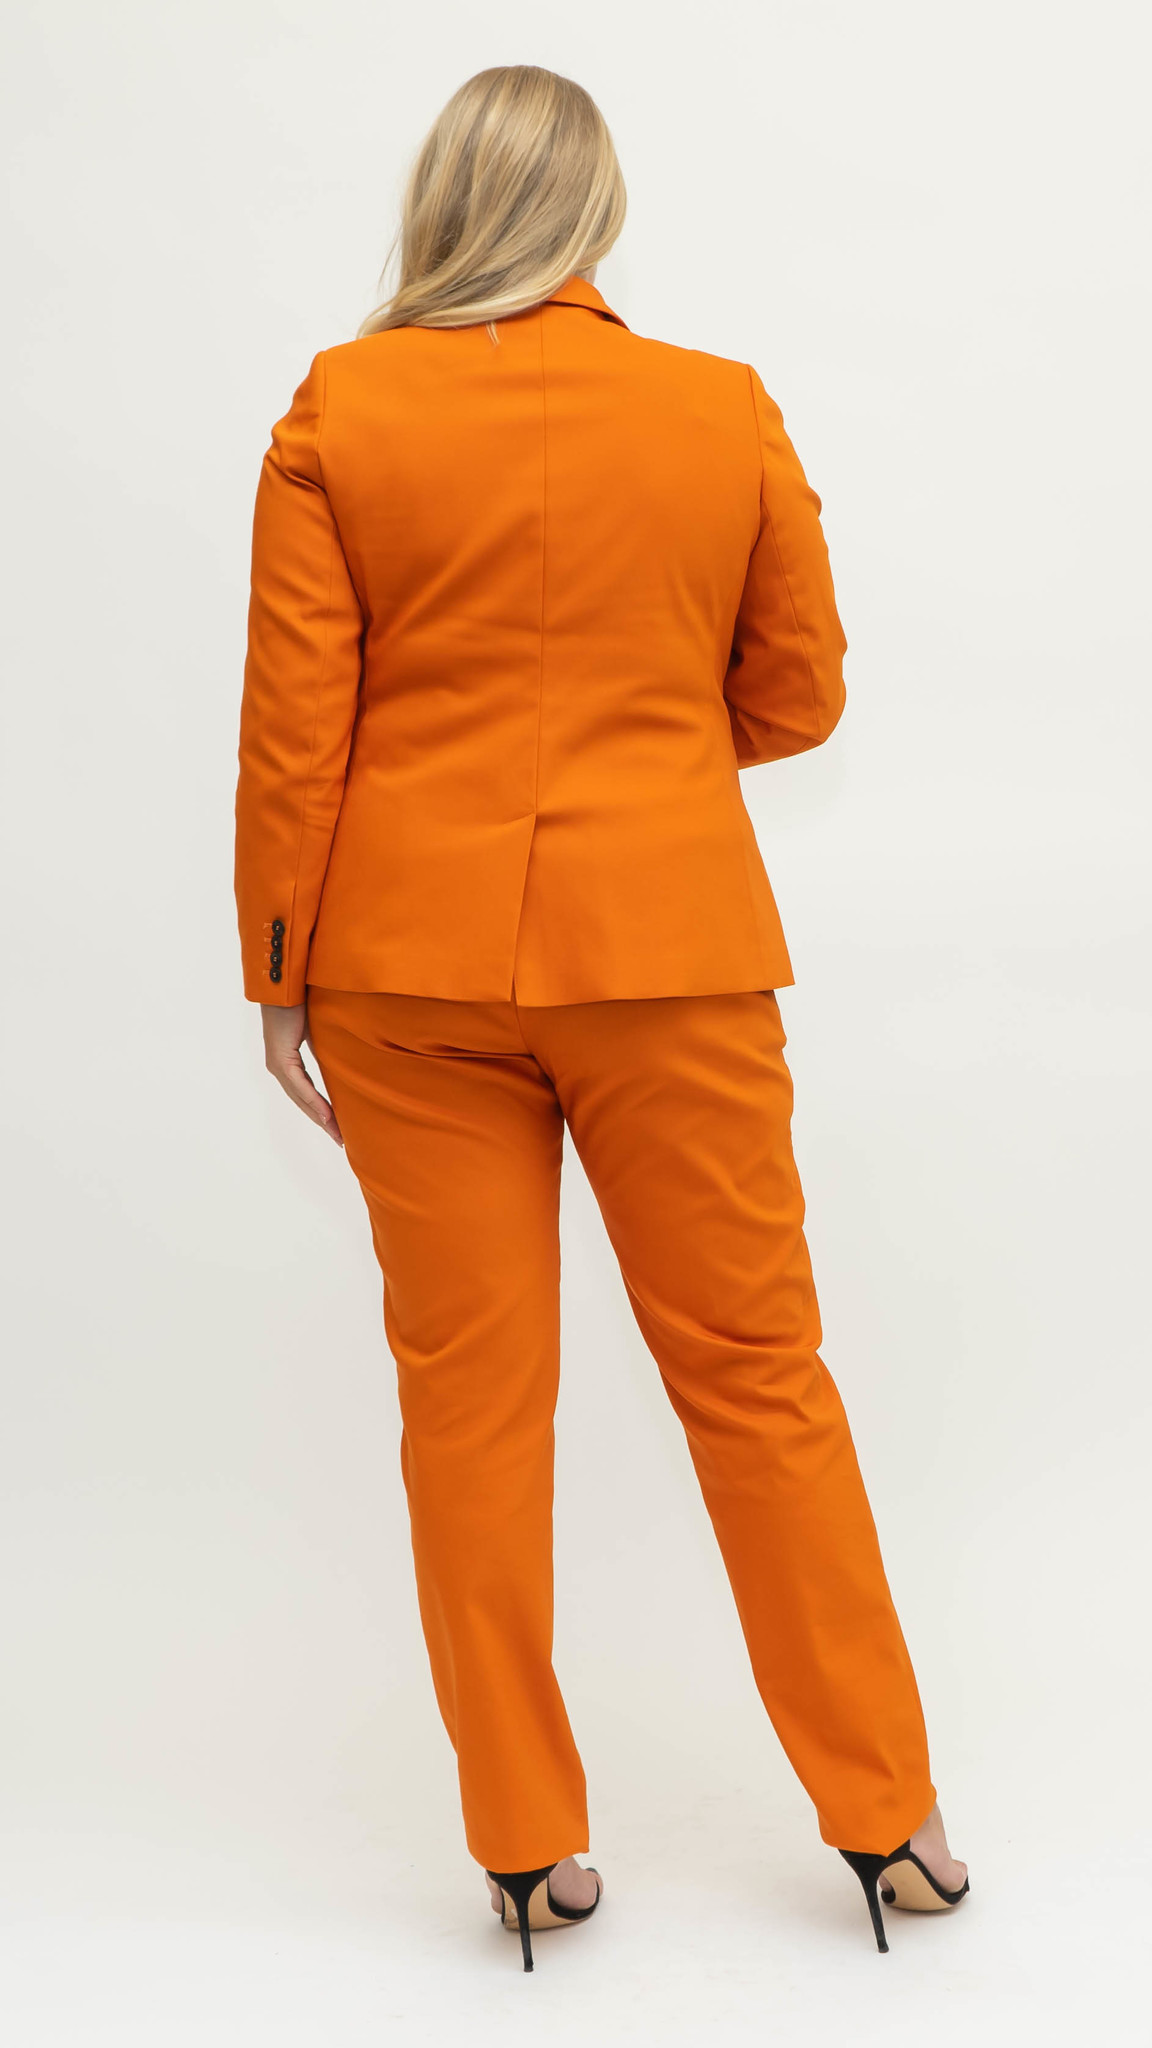 SEVEN Trousers in Cotton stretch-6